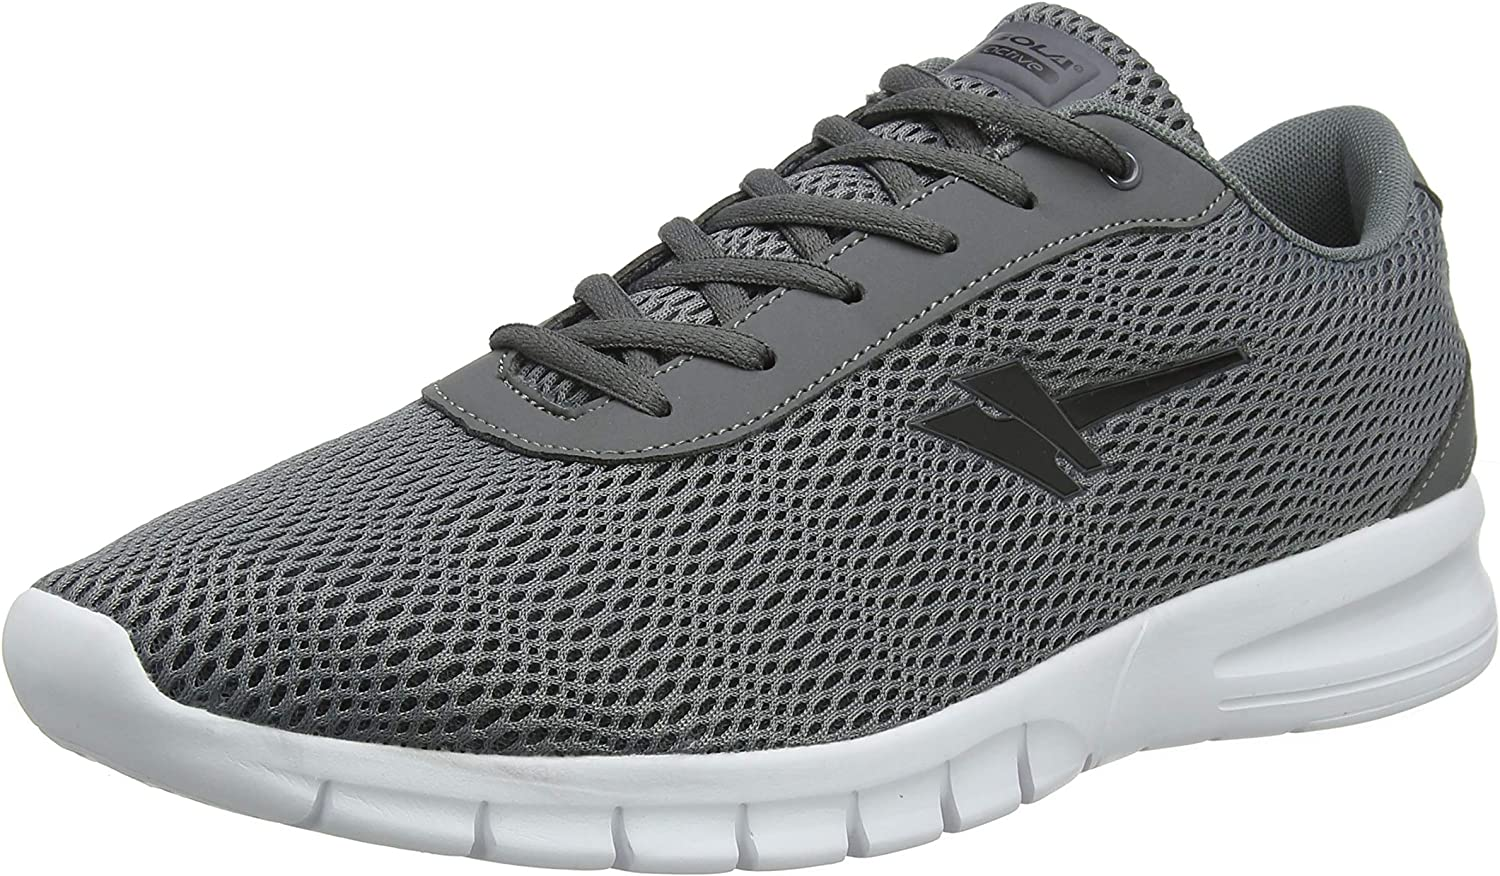 Gola Men's Shoes Fitness online shop Outlet ☆ Free Shipping